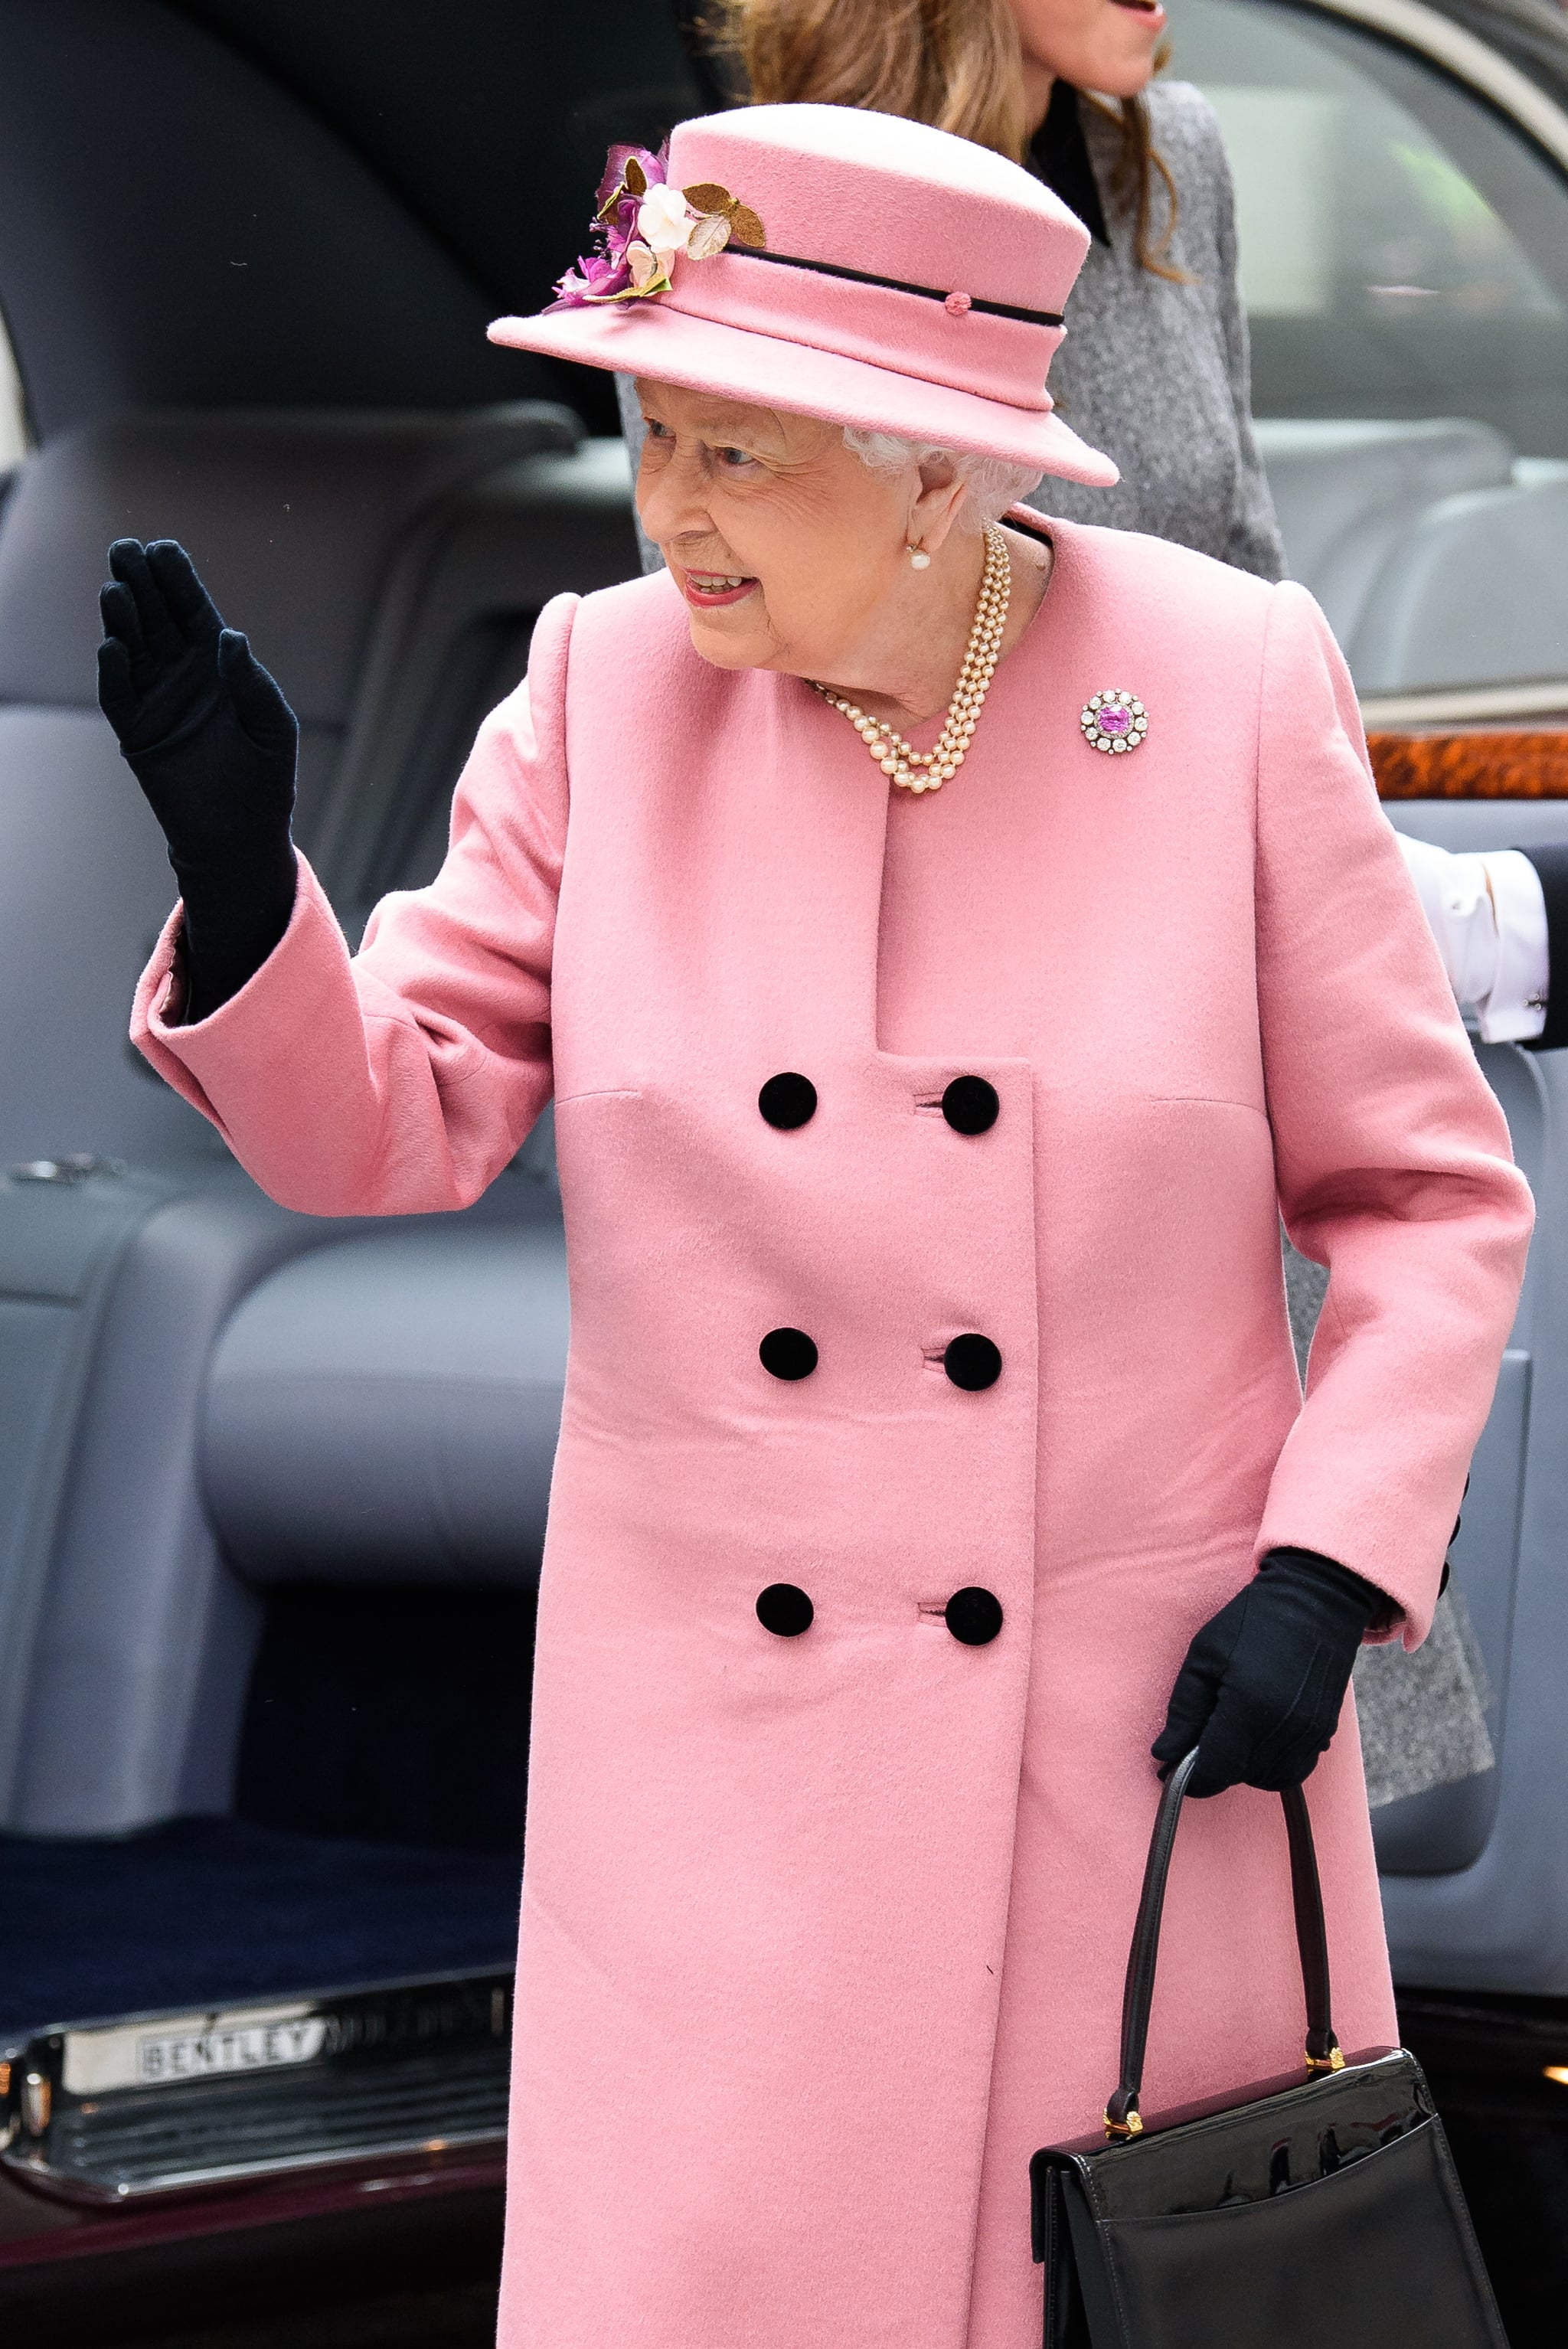 LONDON, ENGLAND - MARCH 19: Queen Elizabeth II visits King's College London on March 19, 2019 in London, England to officially open Bush House, the latest education and learning facilities on the Strand Campus. (Photo by Joe Maher/Getty Images)